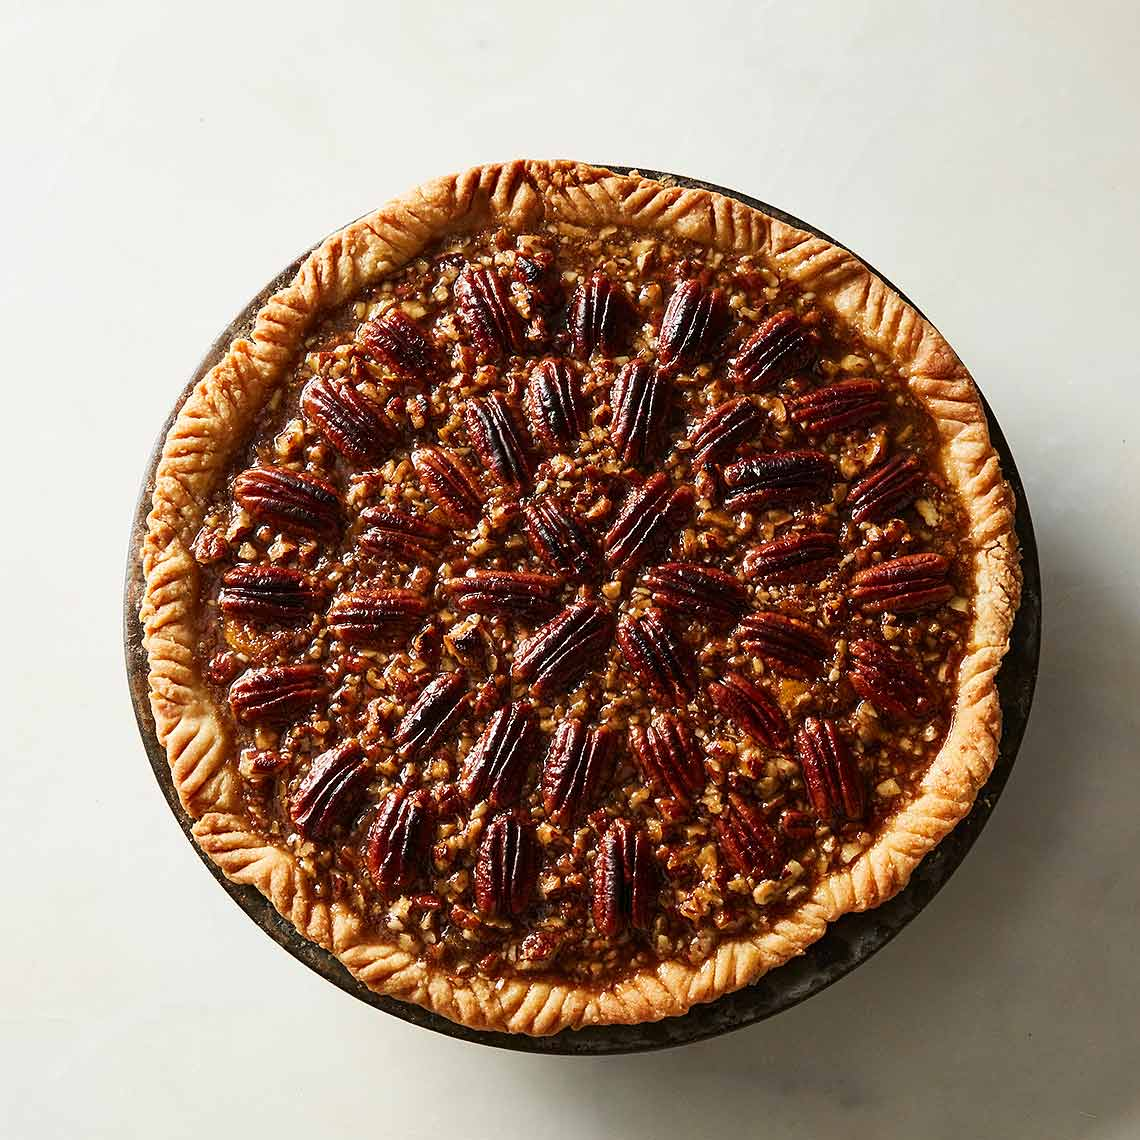 2016-1102_genius-yankee-magazine-pumpkin-pie-pecan-crunch_james-ransom-334